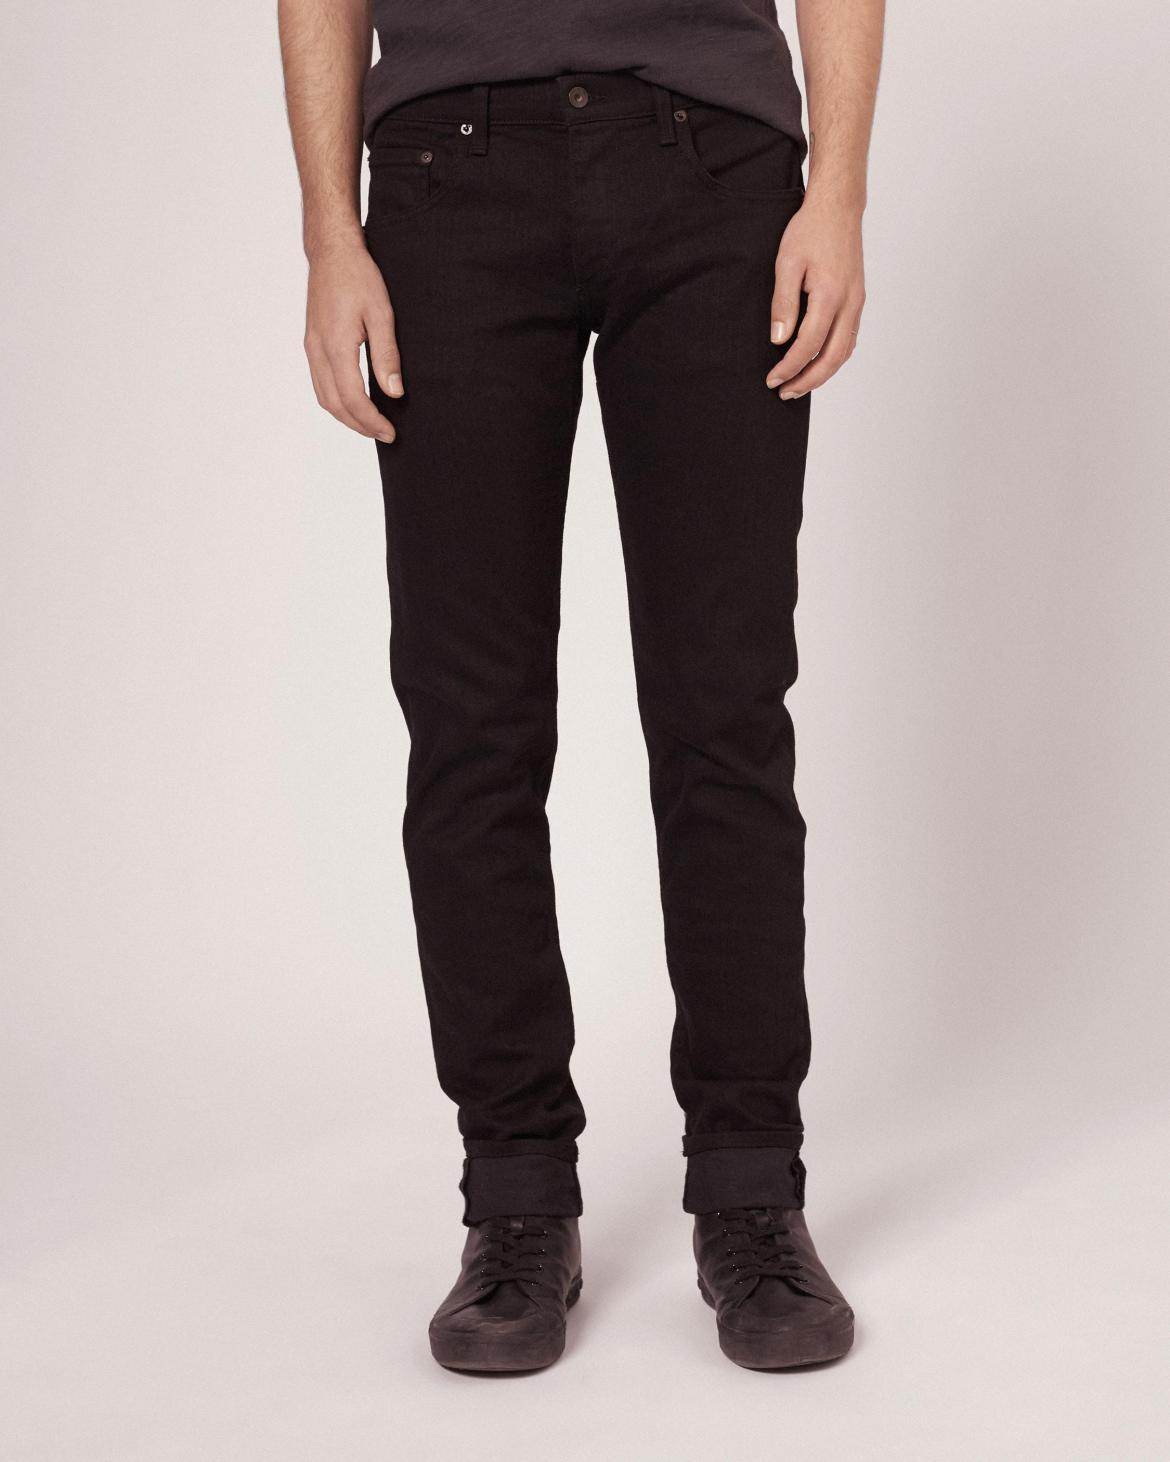 rag & bone Fit 1 black denim jeans, made in U.S.A. of Japanese fabric